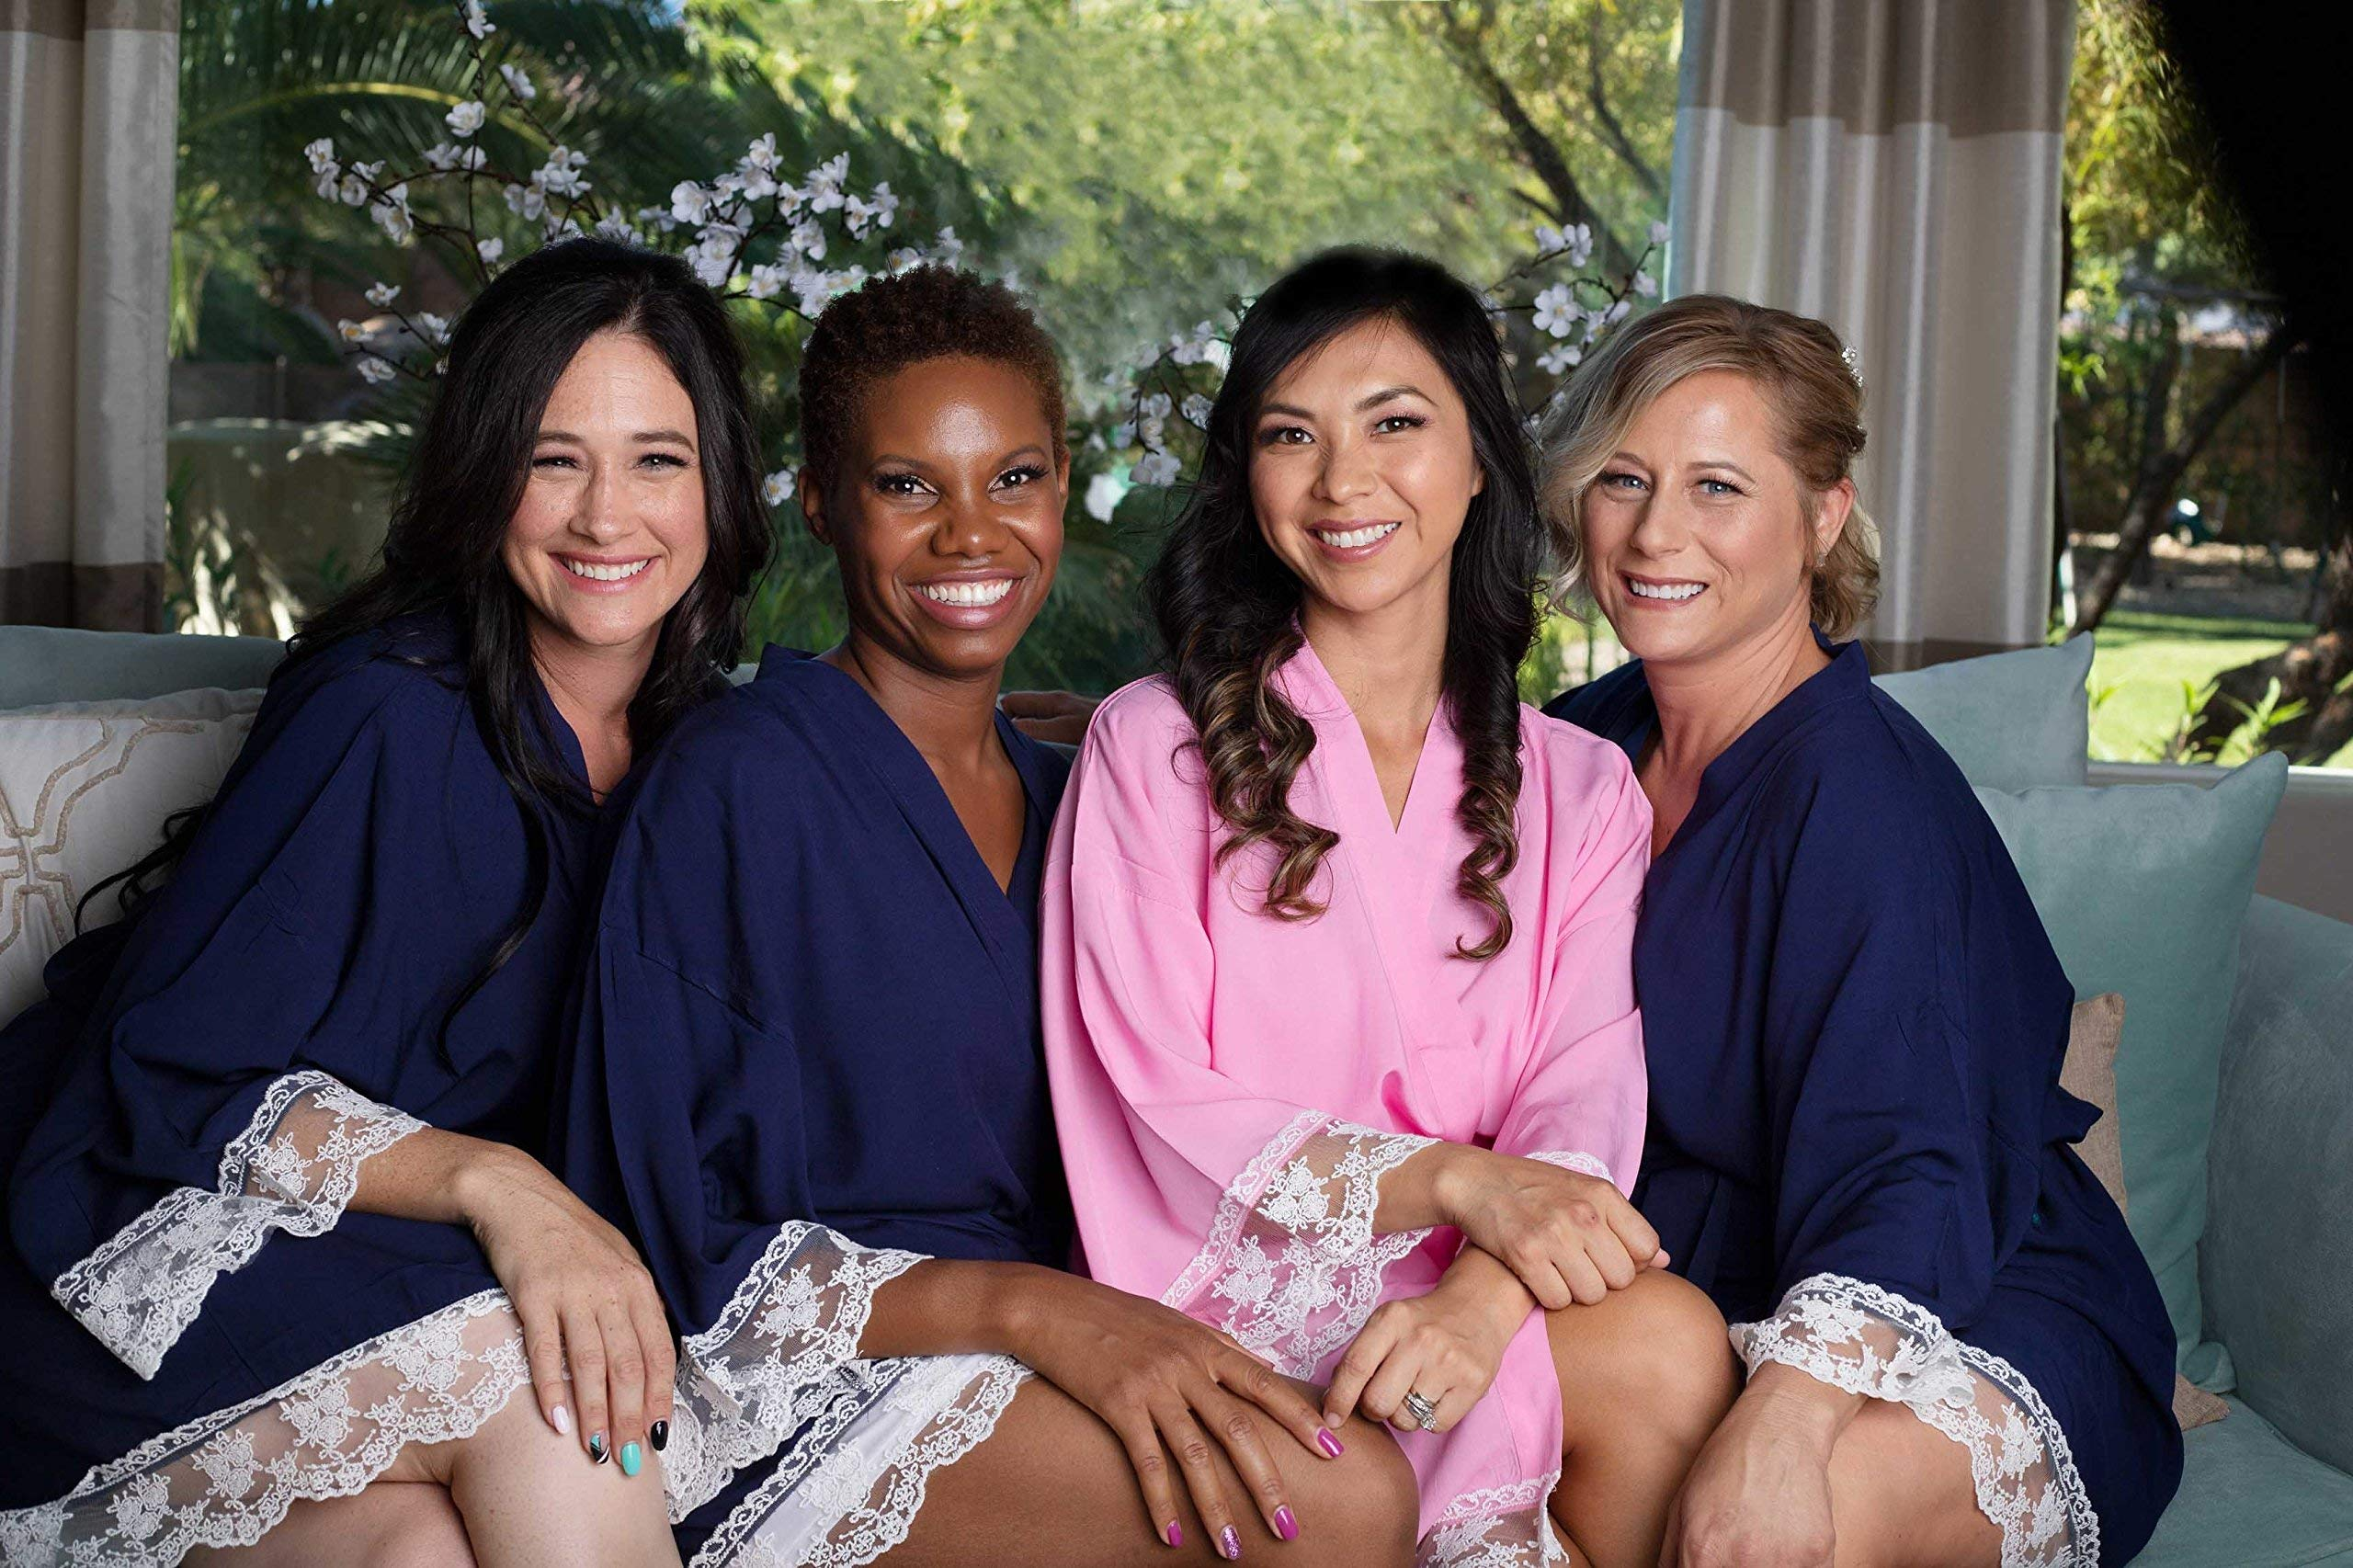 Navy Blue Cotton Bridesmaid Robes With White Lace Trim